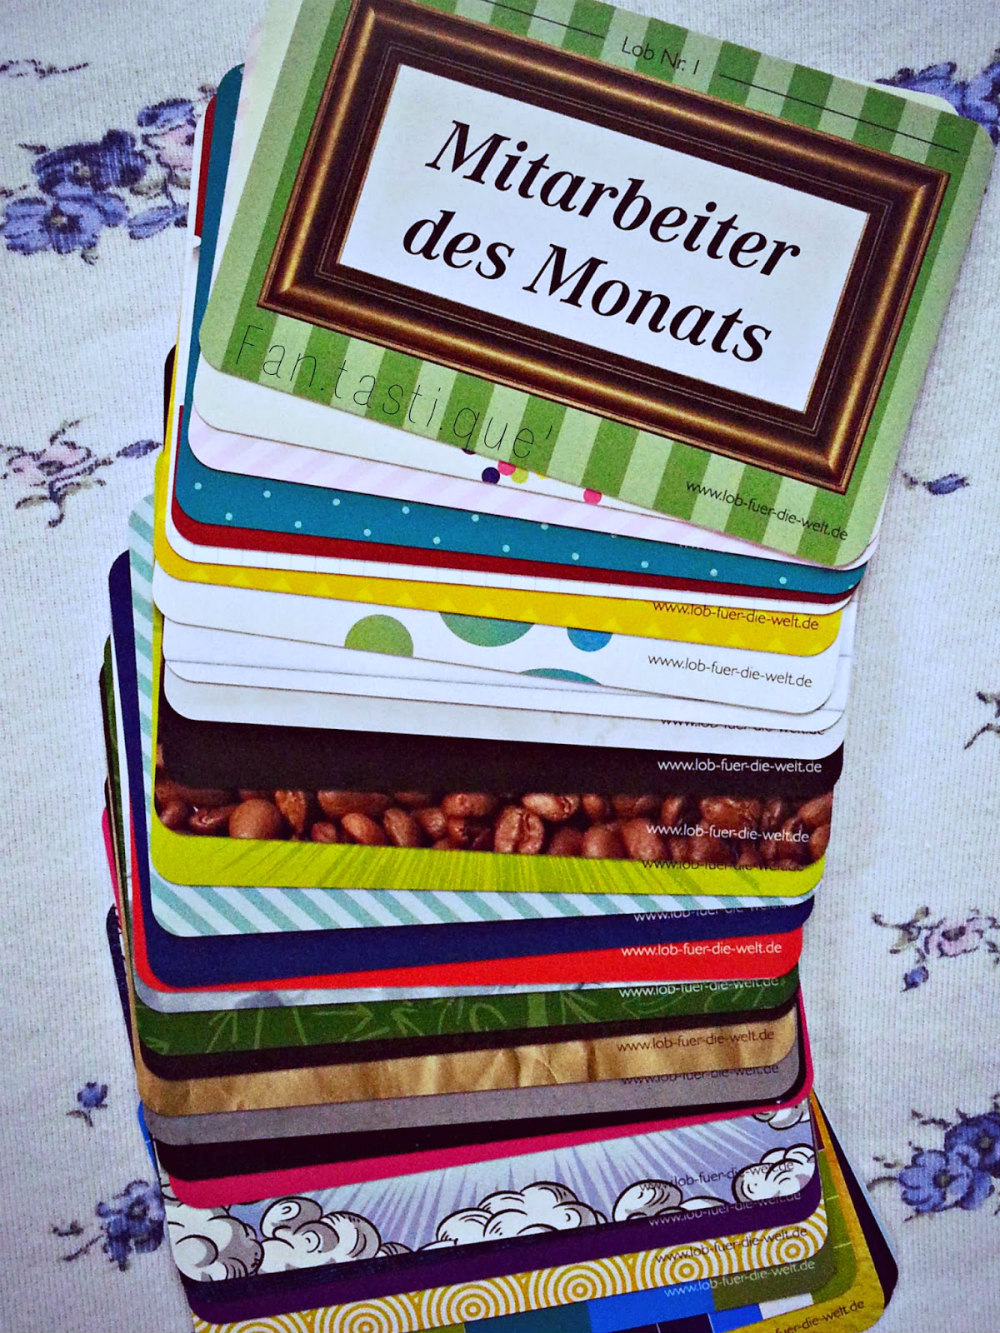 a pack of Lobkarten spread on a white piece of fabric